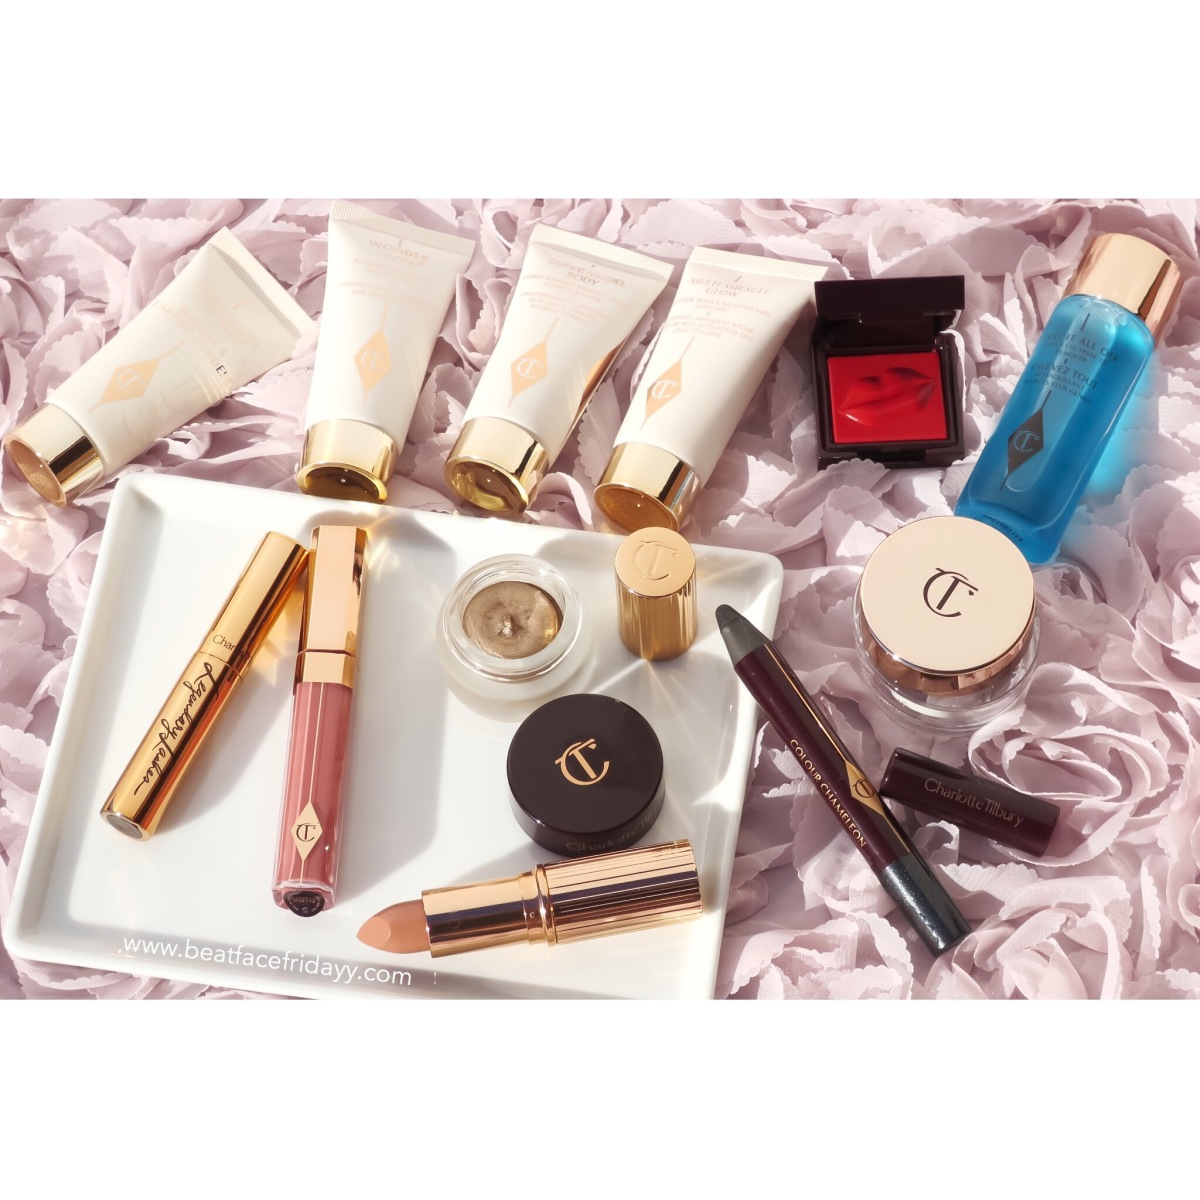 Charlotte Tilbury World of Legendary Parties (2016 HOLIDAY ADVENT CALENDAR)